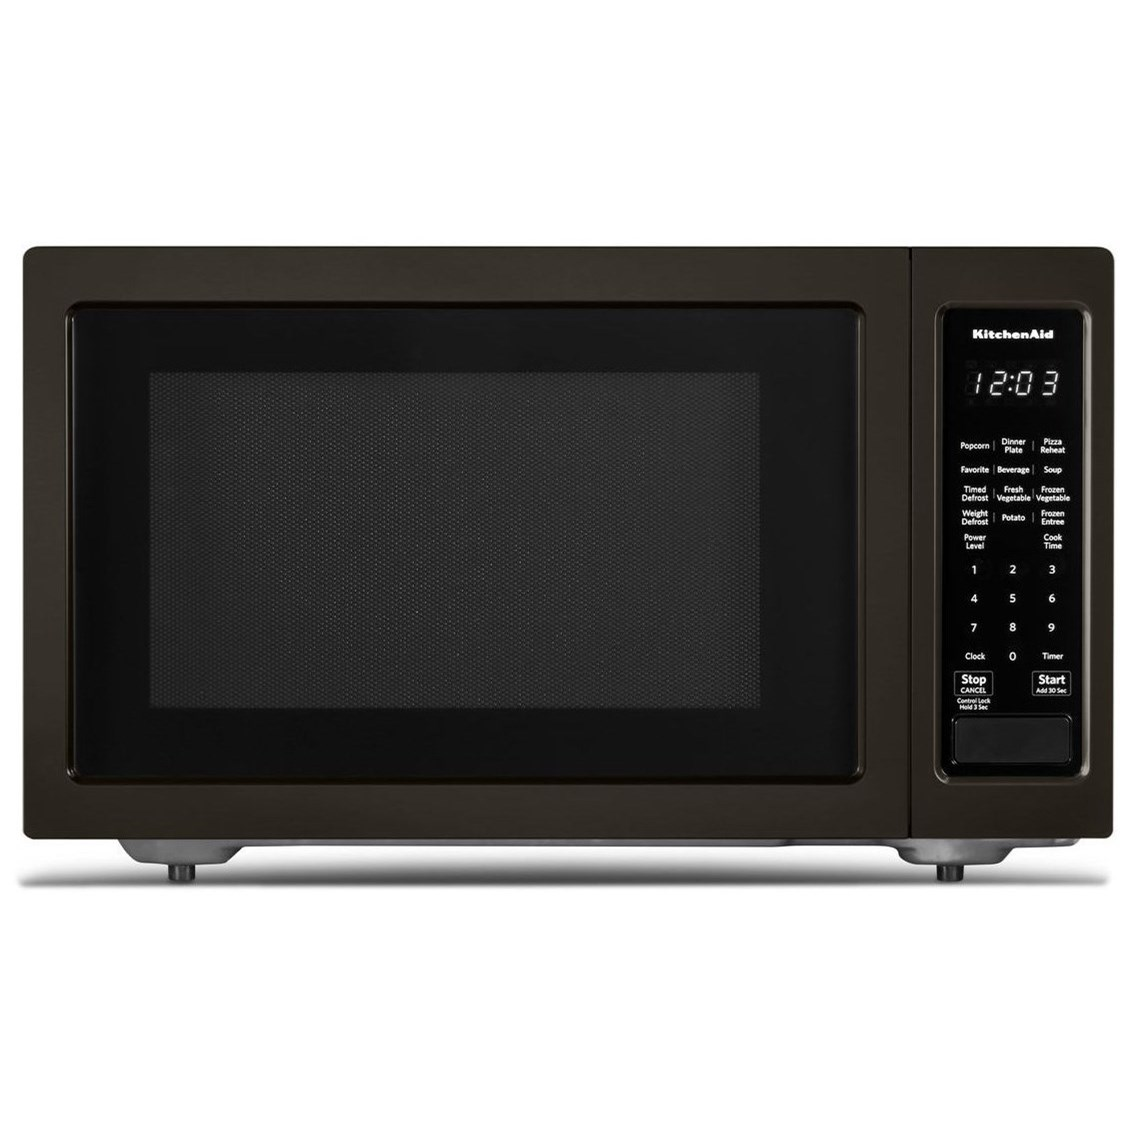 "Microwaves - Kitchenaid 21 3/4"" Countertop Microwave Oven - 1200W by KitchenAid at Furniture and ApplianceMart"